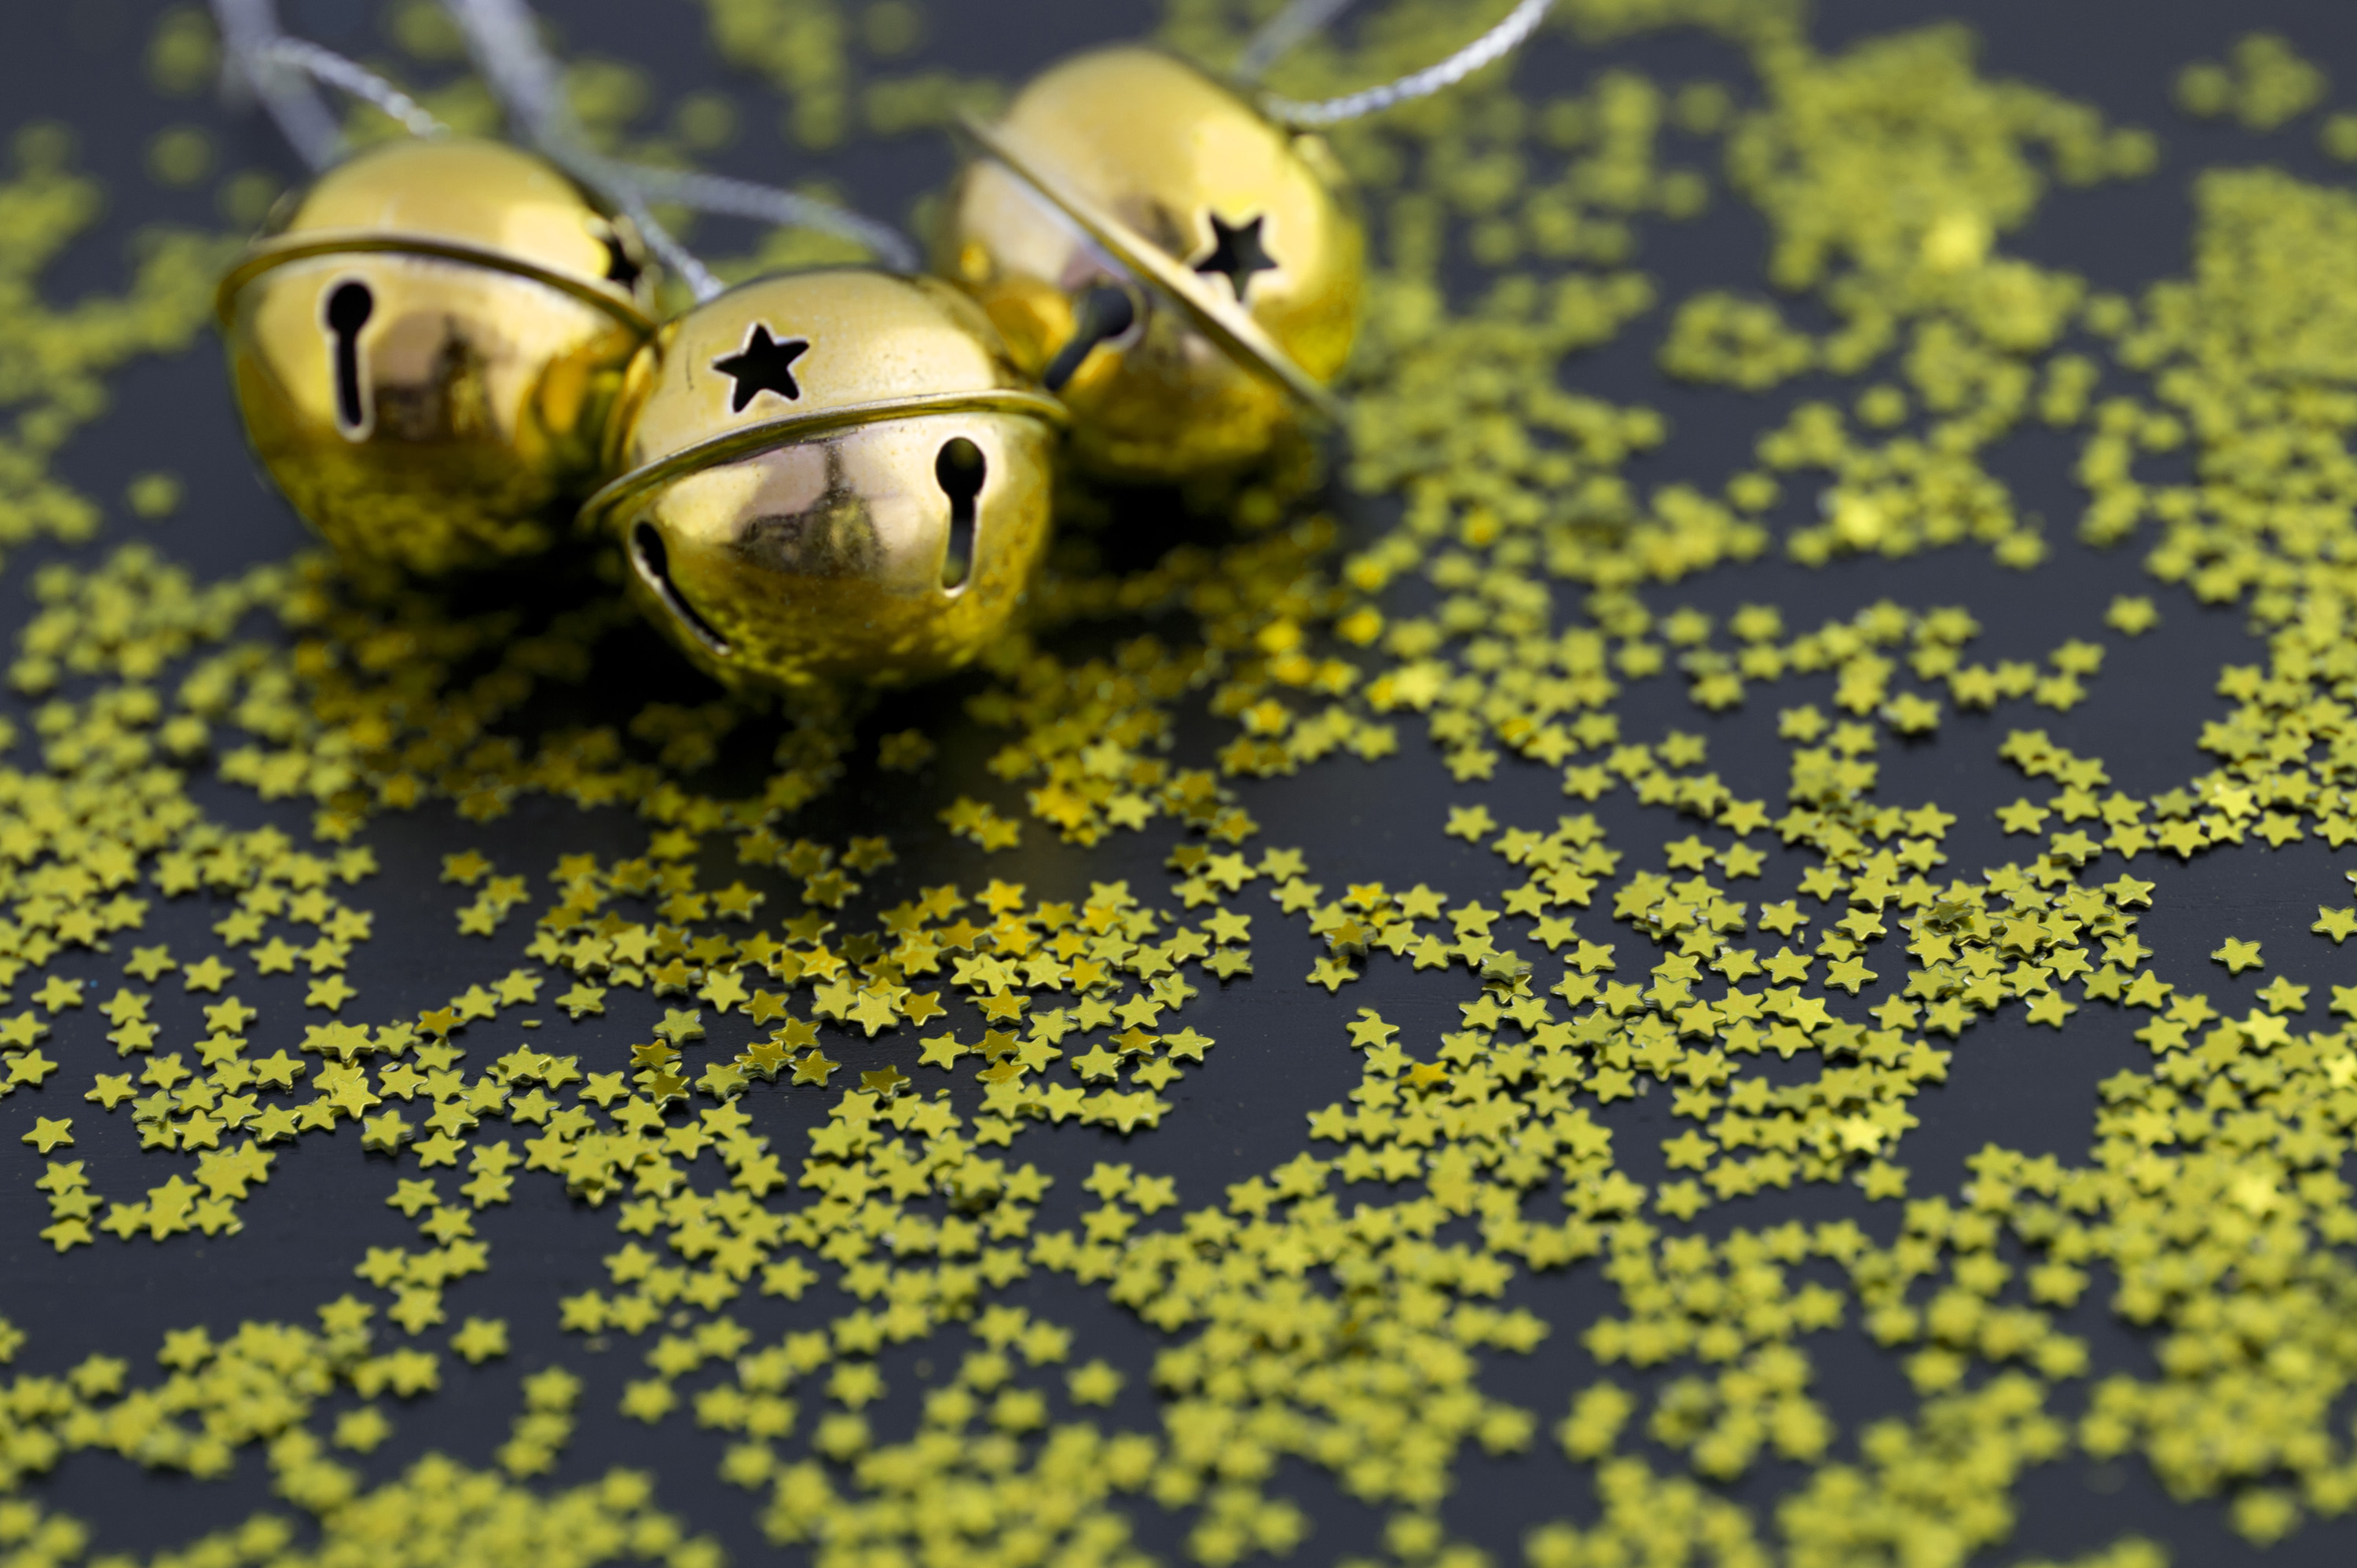 Golden Christams sleigh bells surrounded by scattered gold stars forming a copyspace for your seasonal greetings